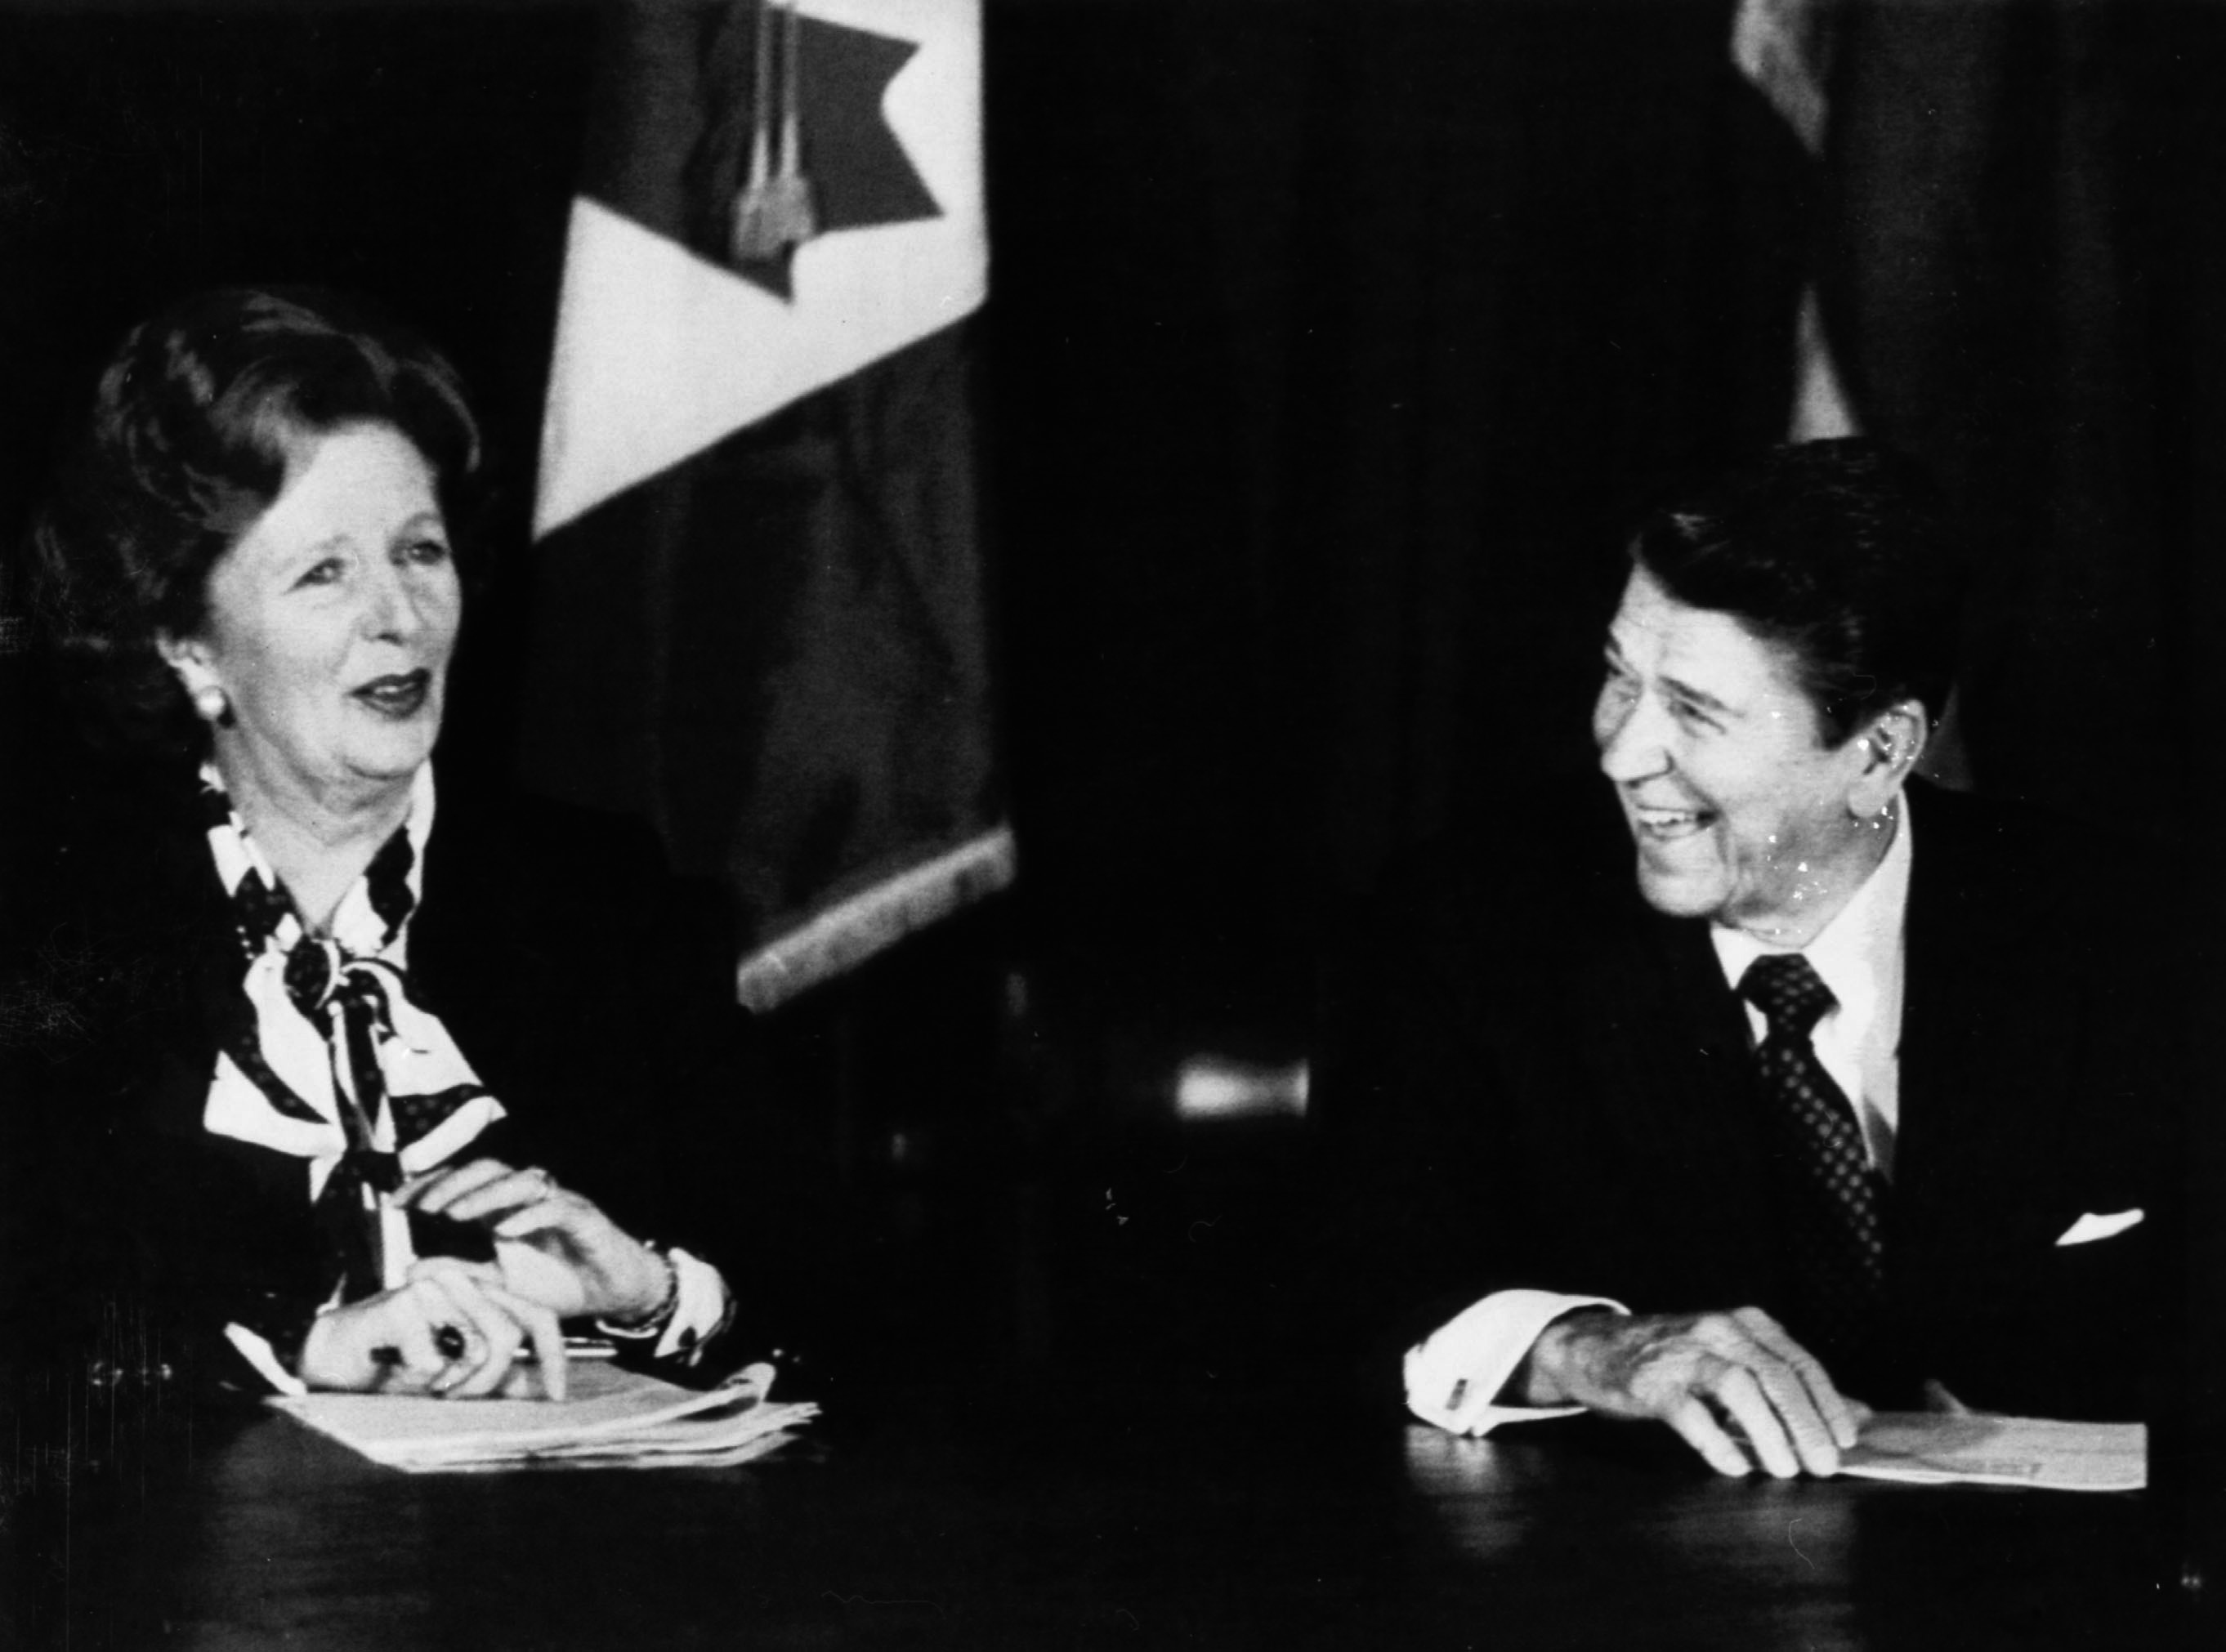 Then British Prime Minister Margaret Thatcher (L) and then U.S. President Ronald Reagan share a laugh during a meeting of the Allied leaders in New York in this October 24, 1985 file photo.